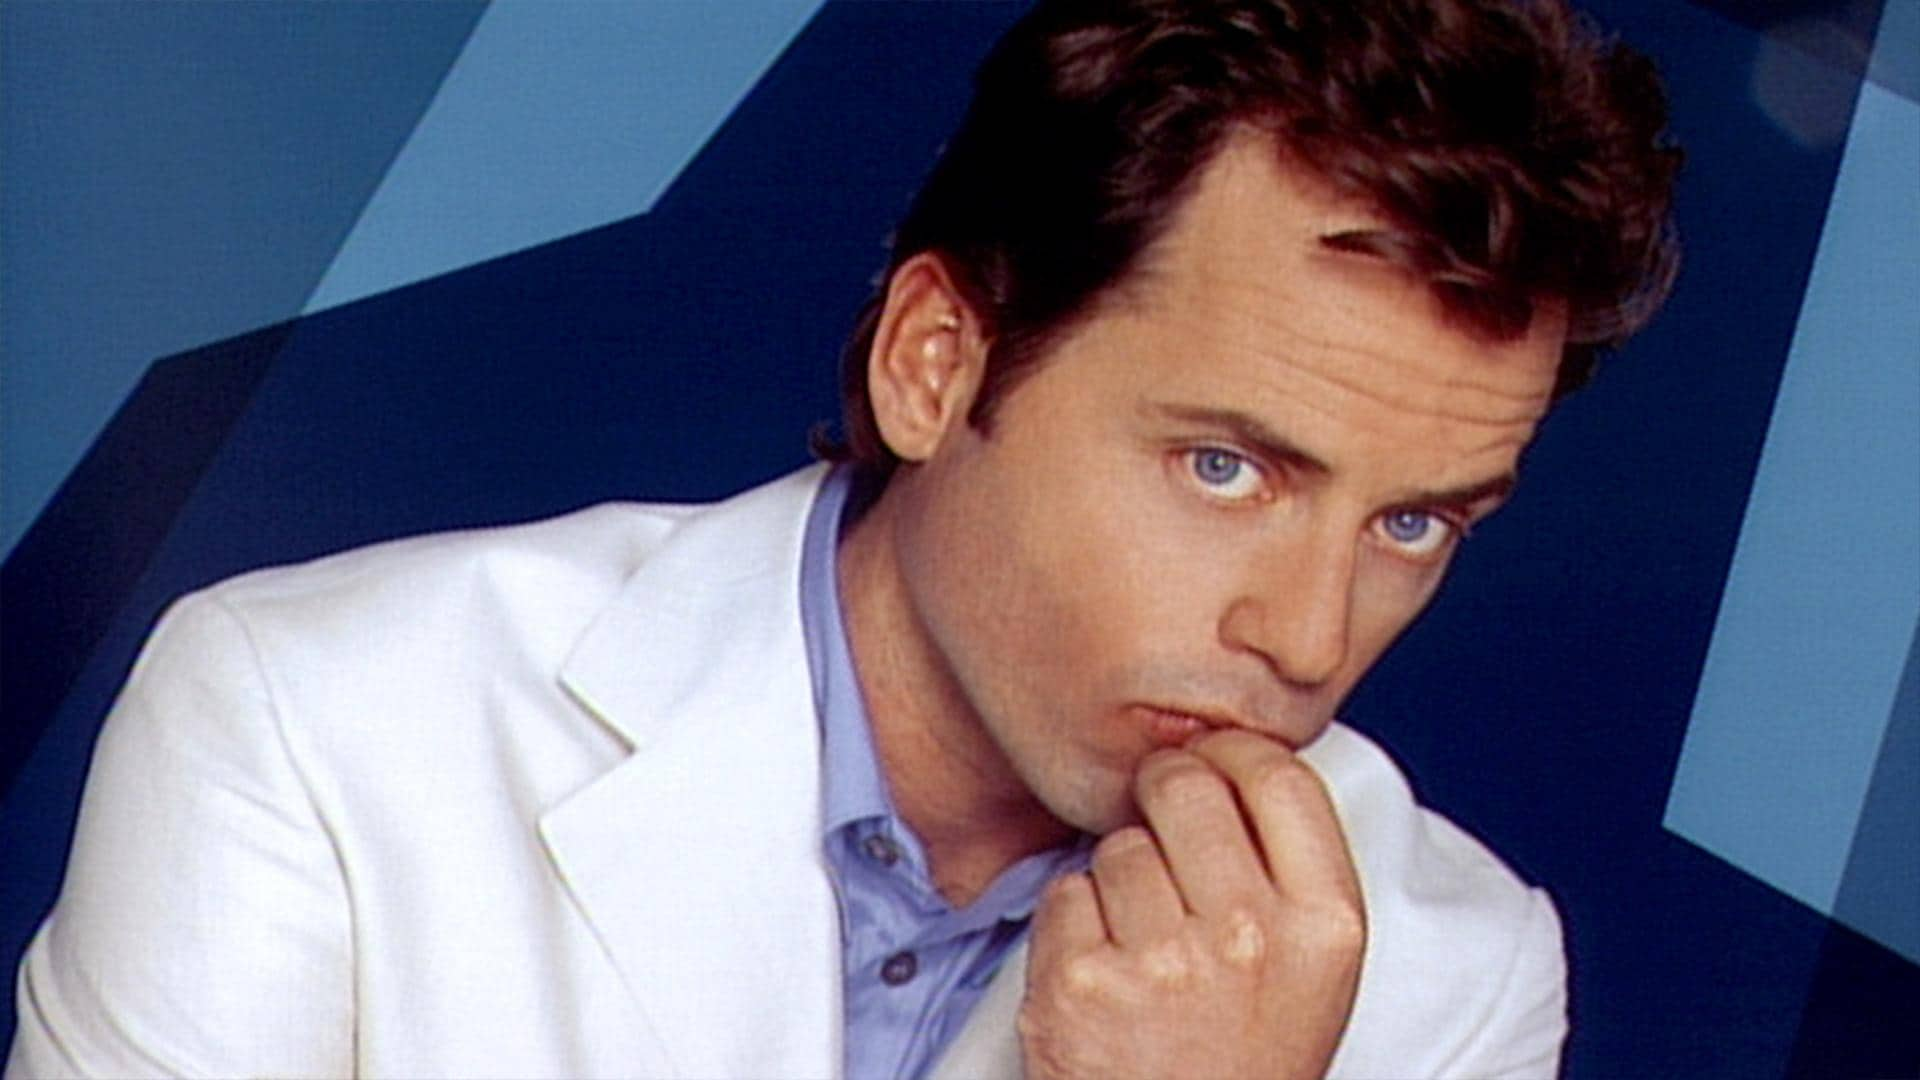 Greg Kinnear: April 11, 1998